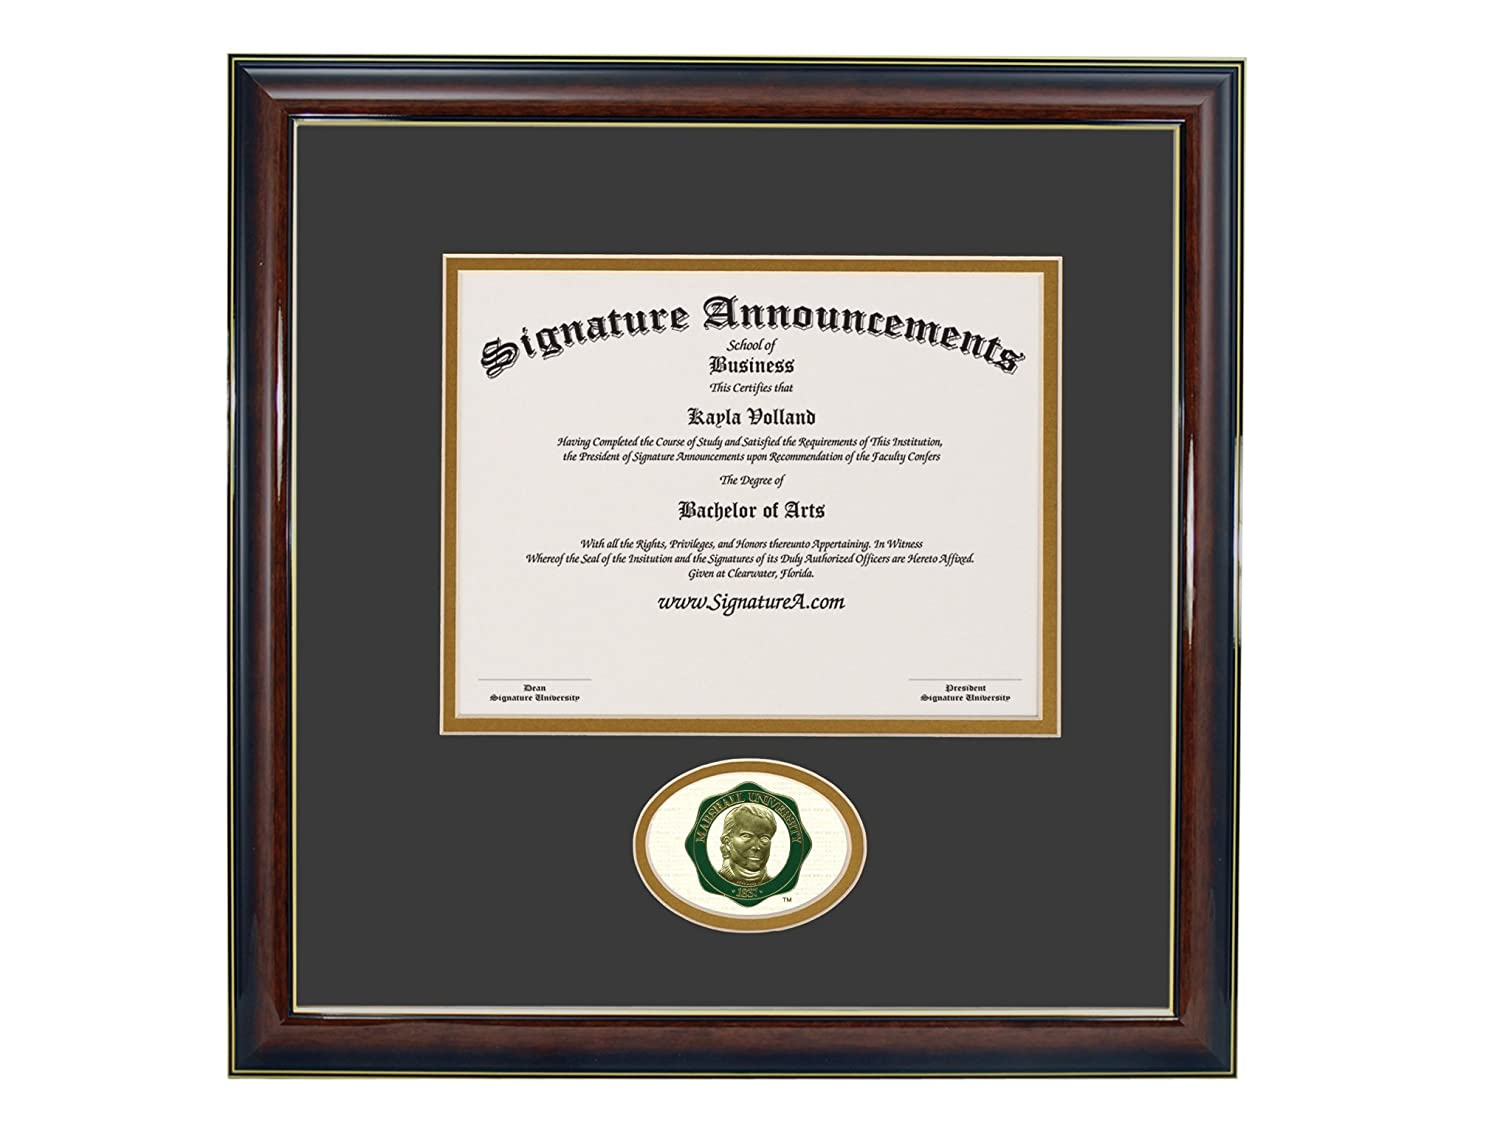 Professional//Doctor Sculpted Foil Seal Graduation Diploma Frame 16 x 16 Gold Accent Gloss Mahogany Signature Announcements Marshall-University Undergraduate